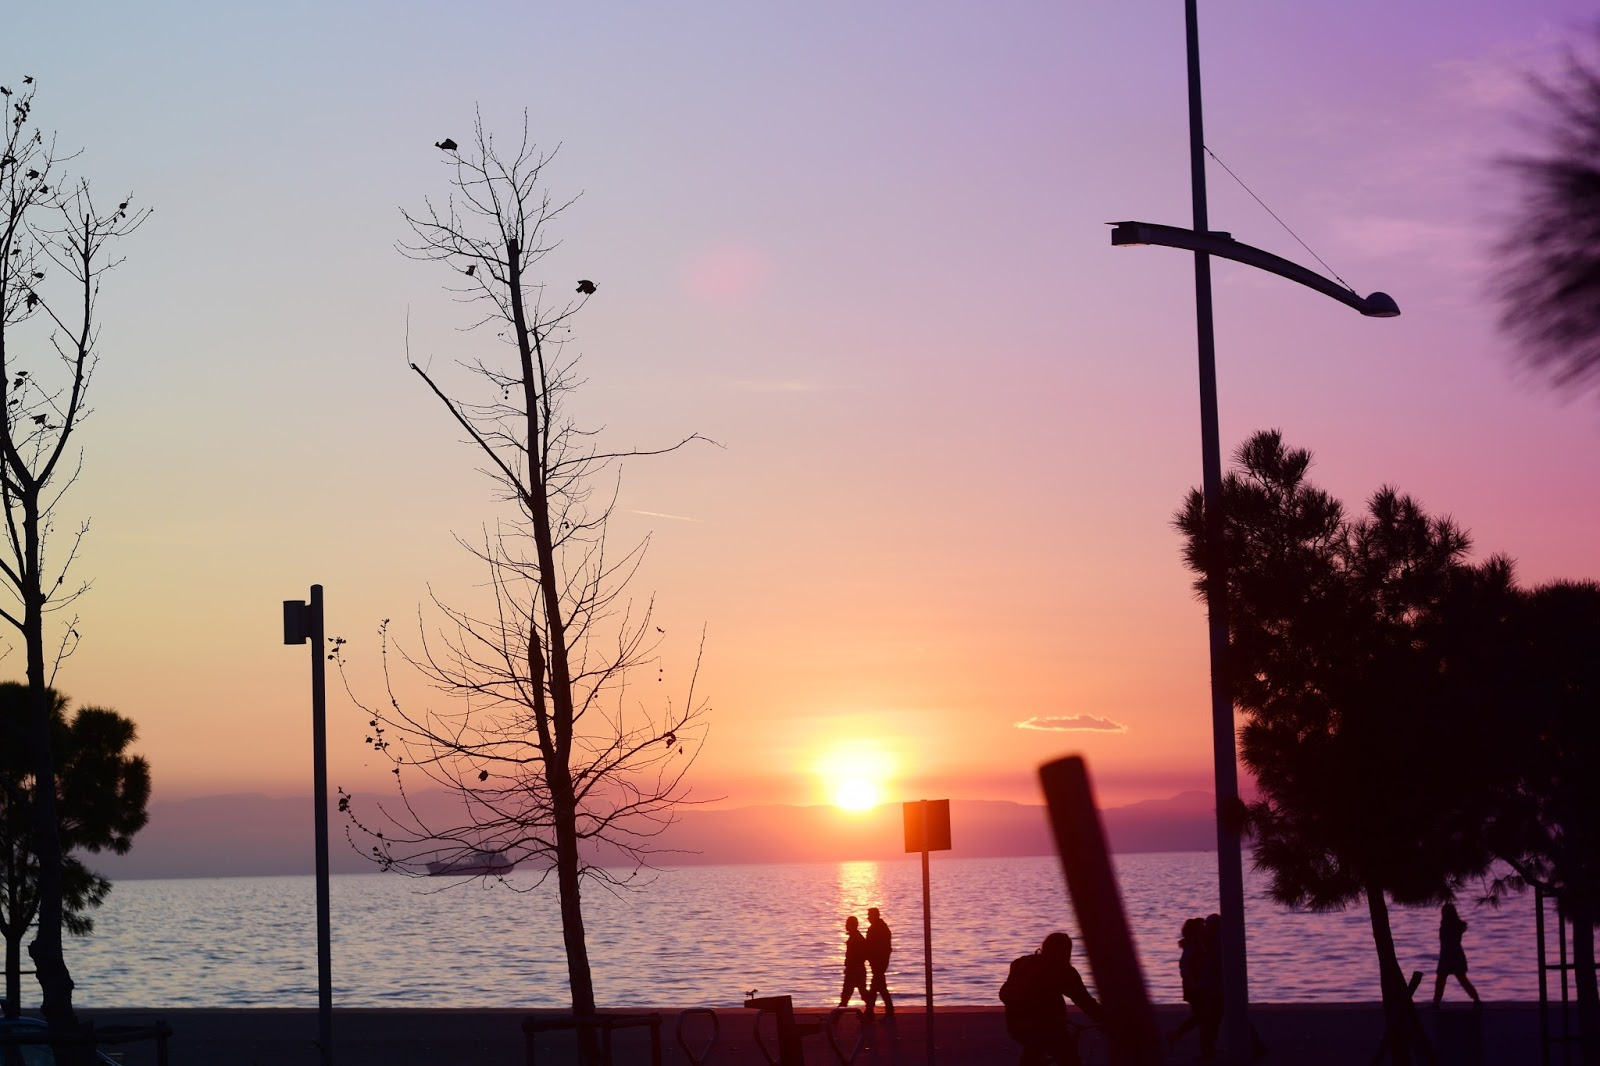 k-meets-style sunset in thessaloniki